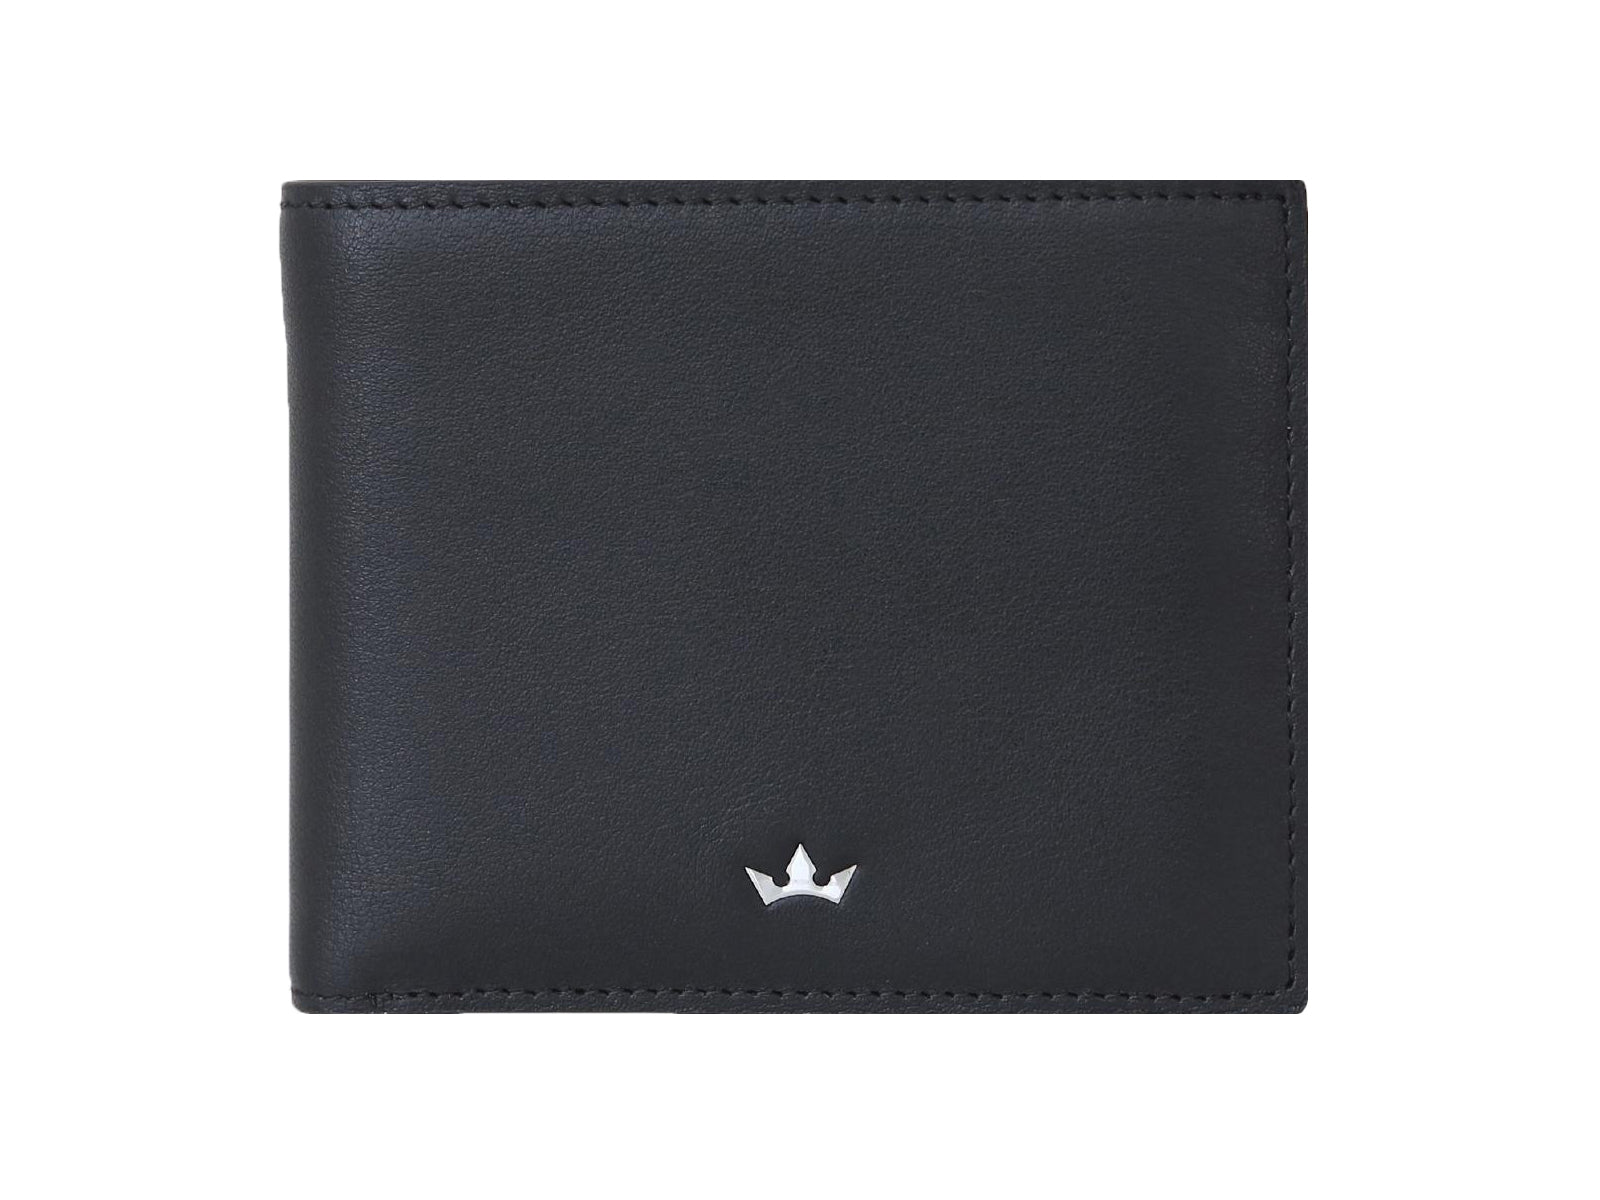 Roderer Bifold Wallet 12 Card Roma Black